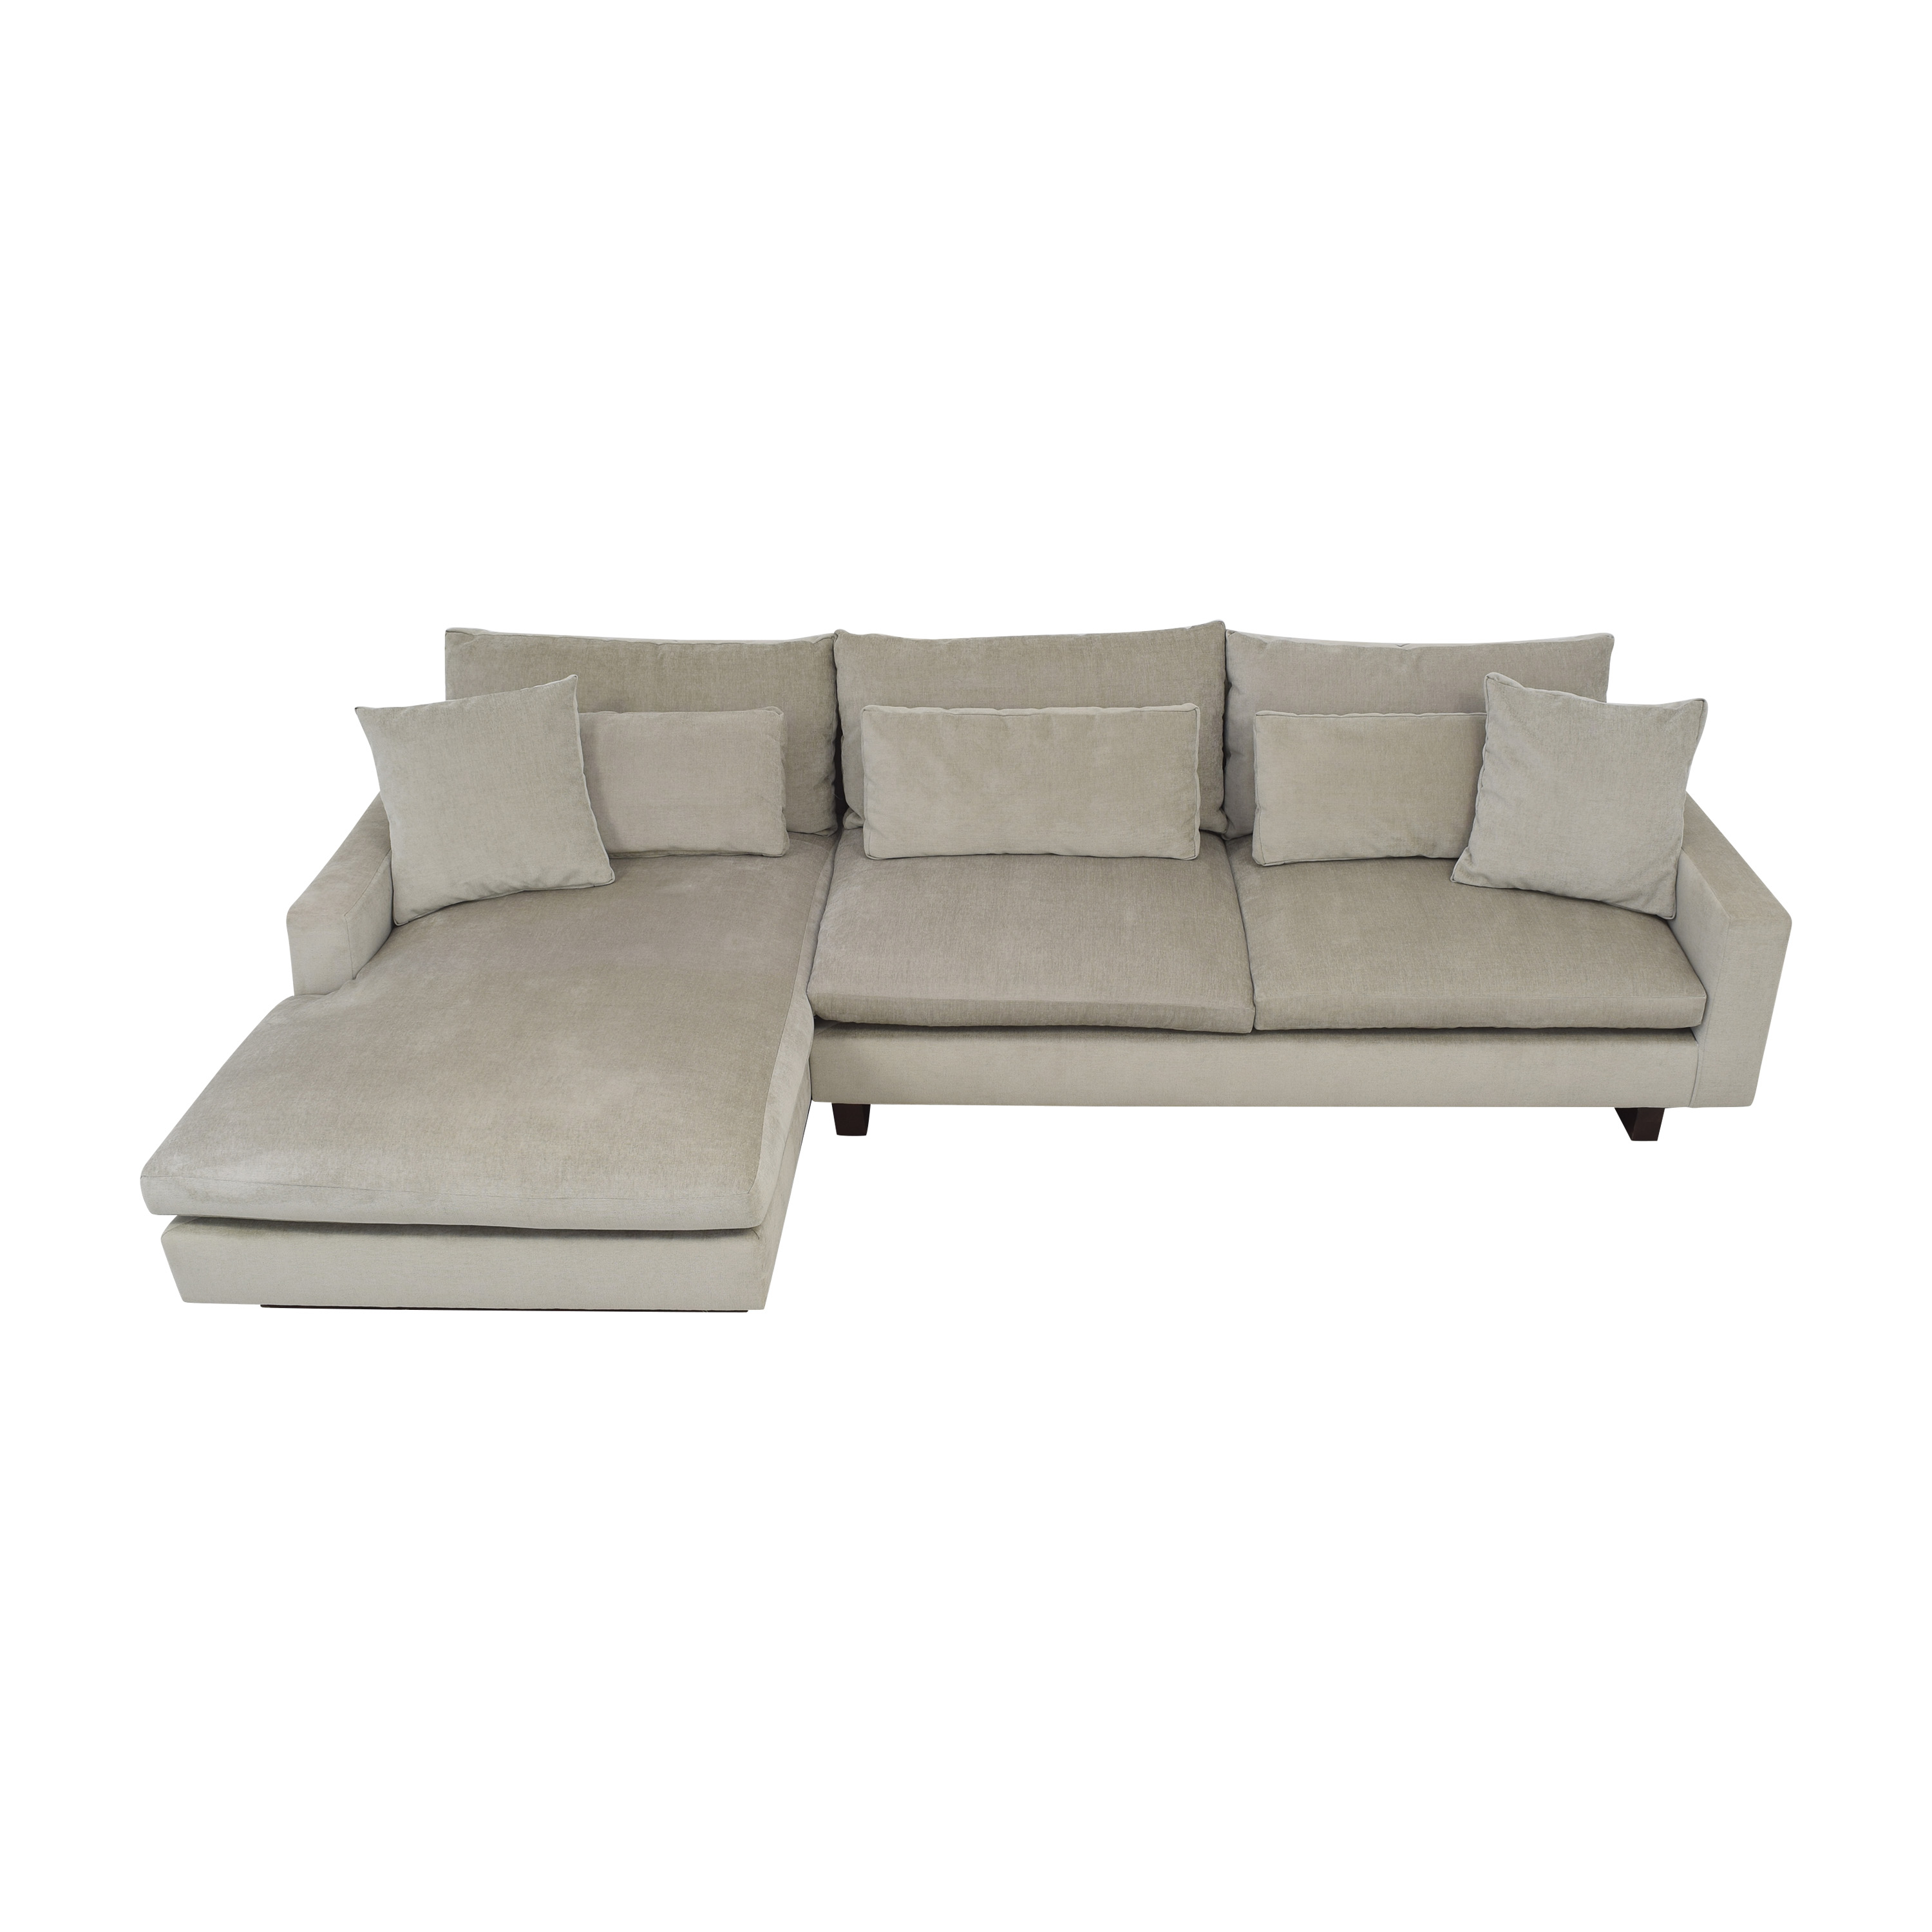 West Elm West Elm Harmony Chaise Sectional Sofa nyc